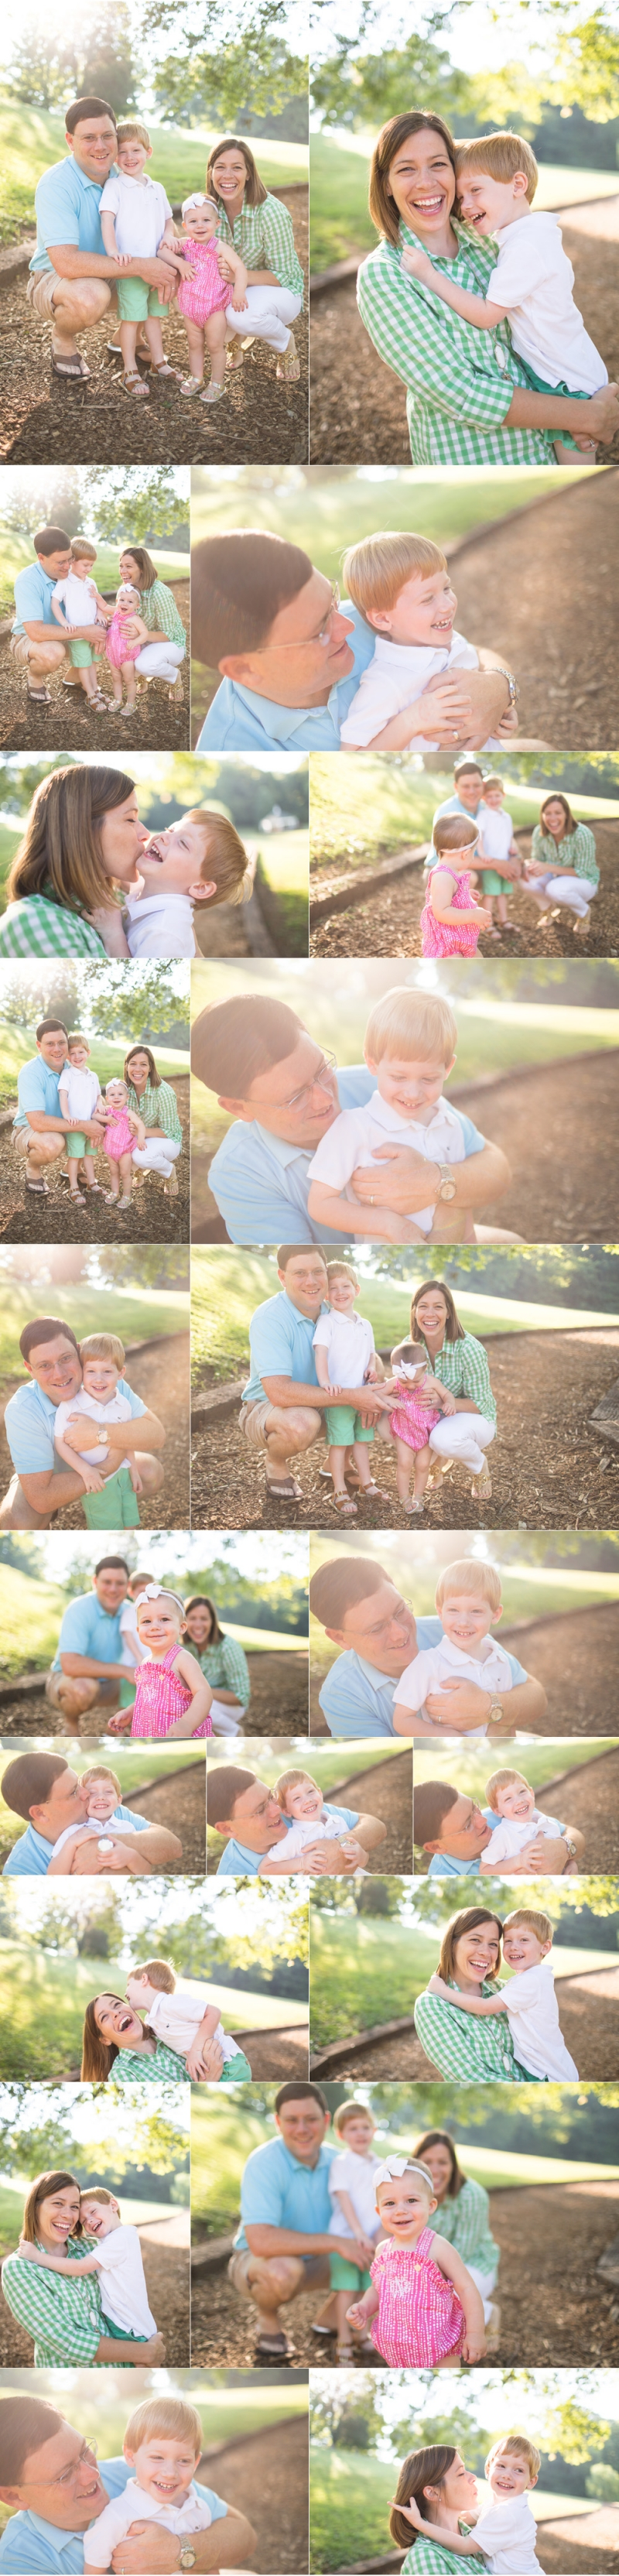 middle tennessee family photographer 2